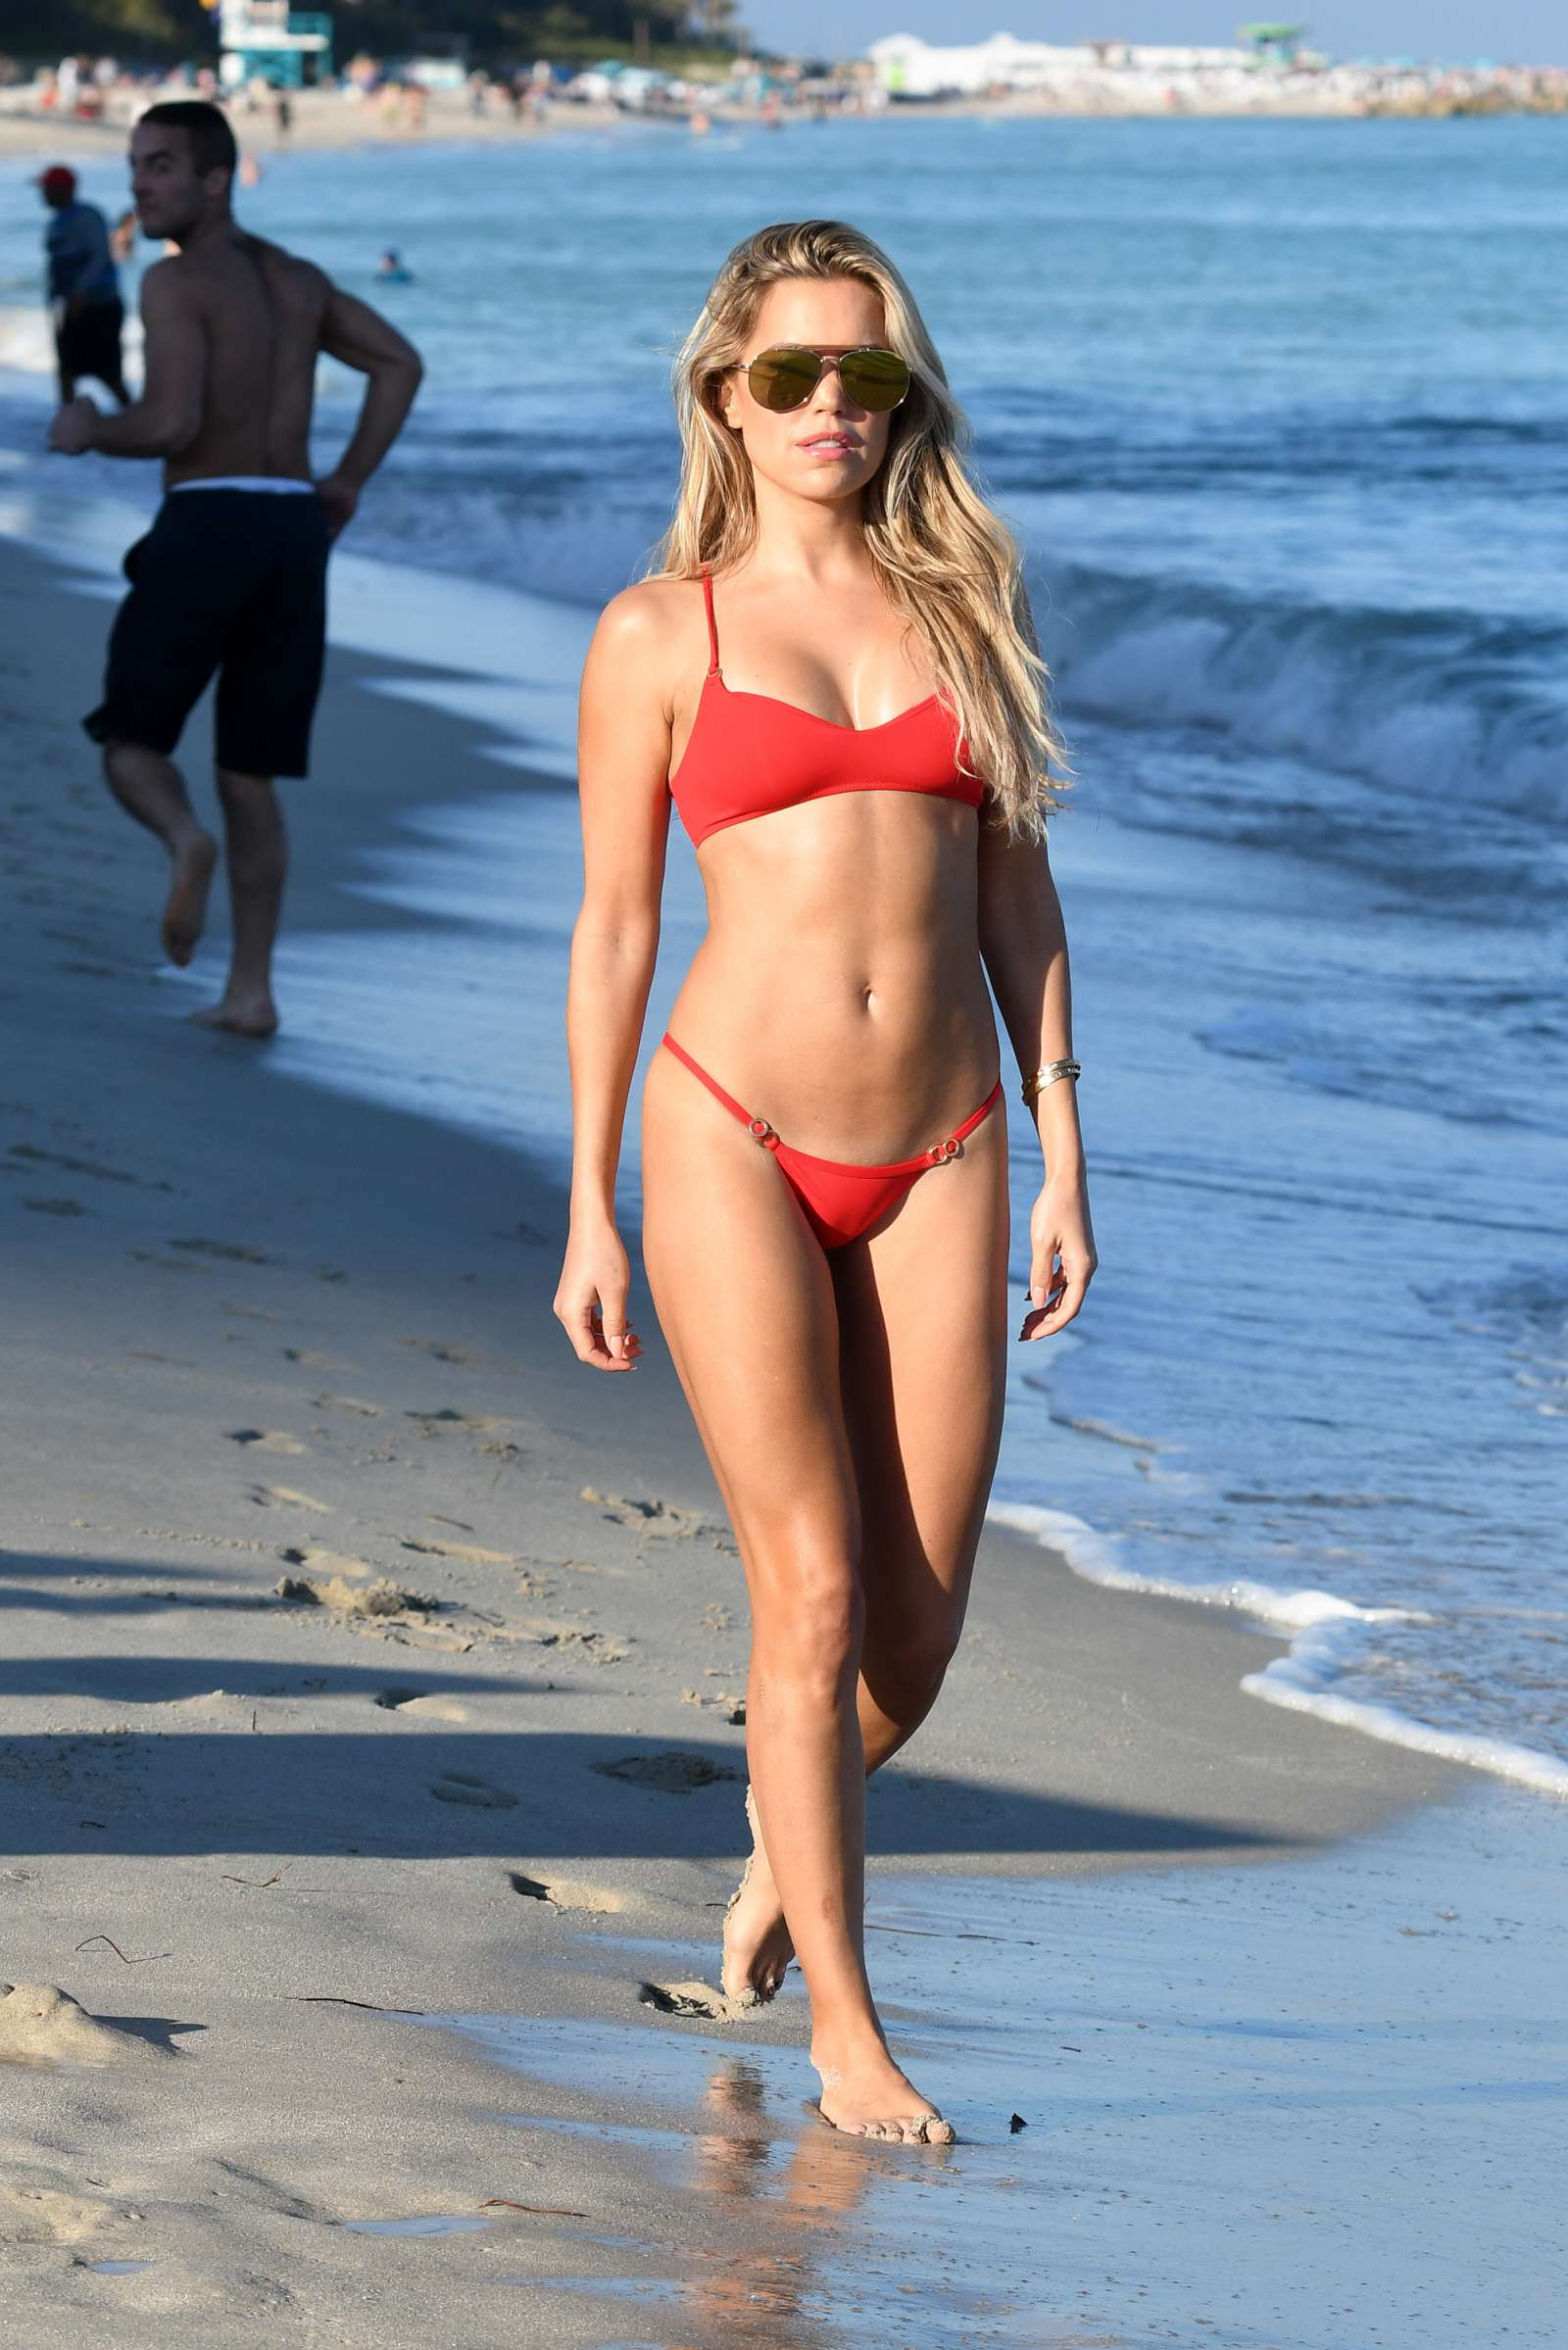 sylvie meis in red bikini on the beach in miami indian girls villa celebs beauty fashion. Black Bedroom Furniture Sets. Home Design Ideas